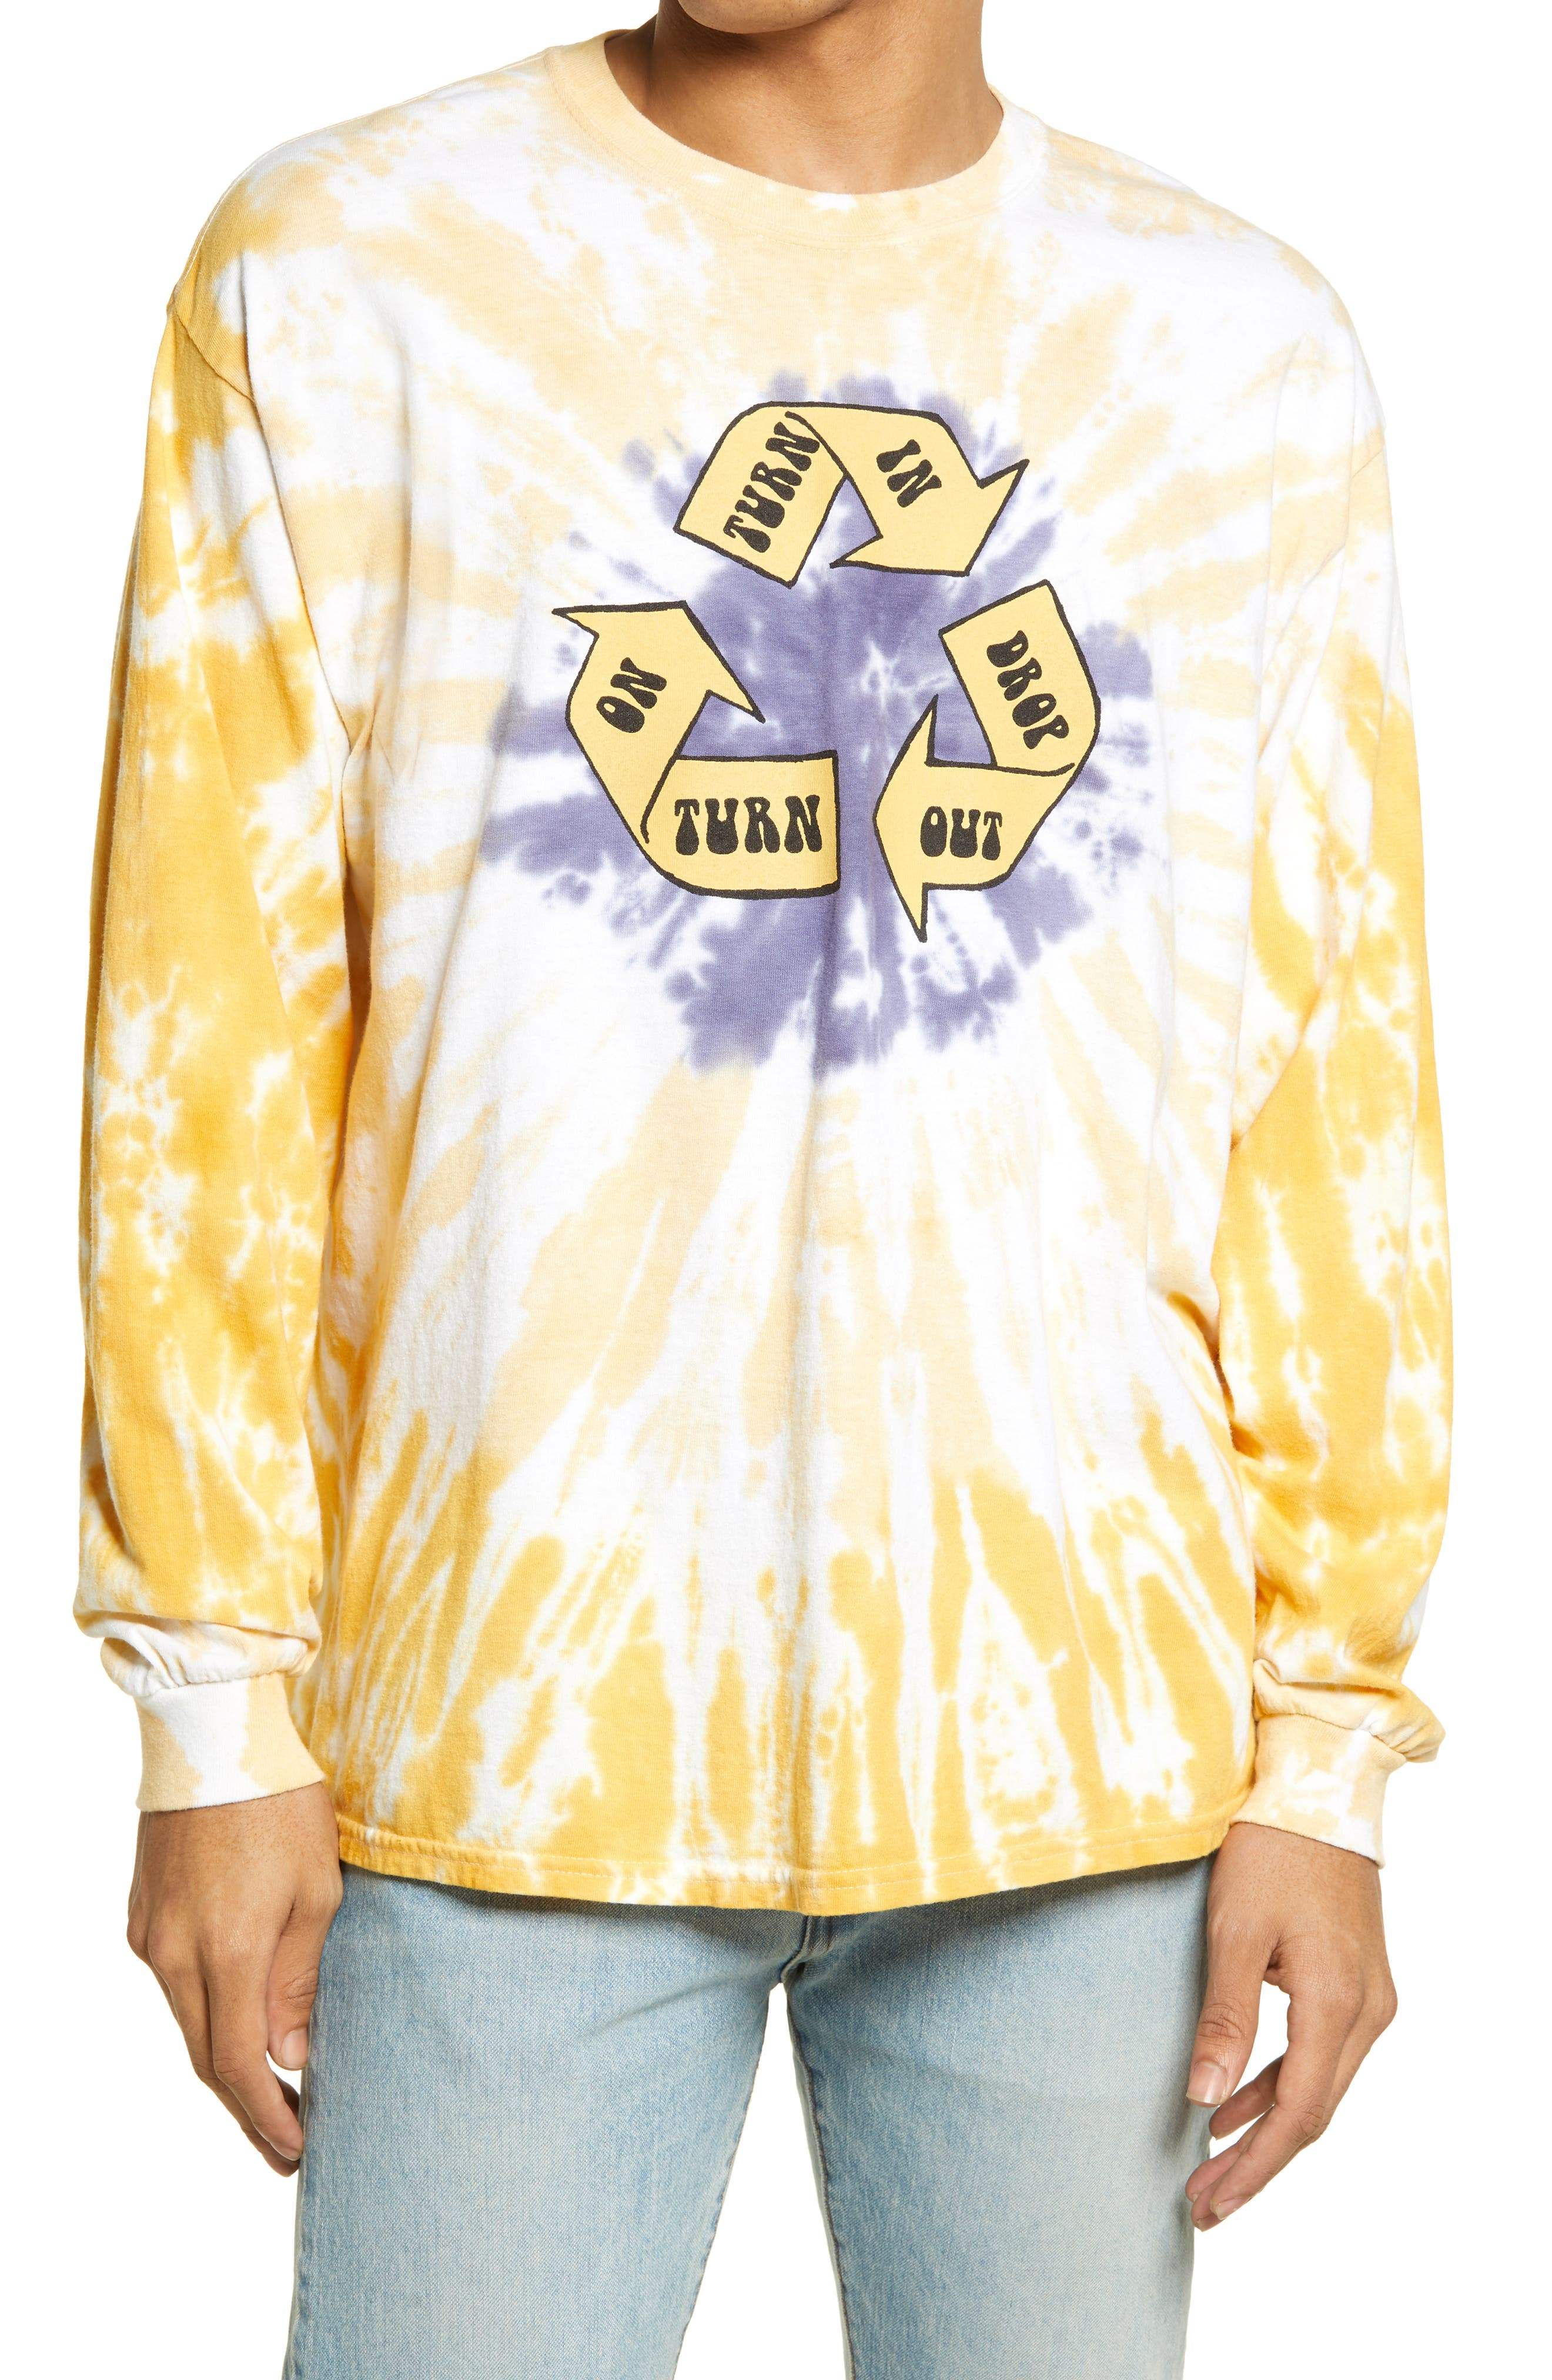 Turn On Tune In Drop Out Long Sleeve Graphic Tee